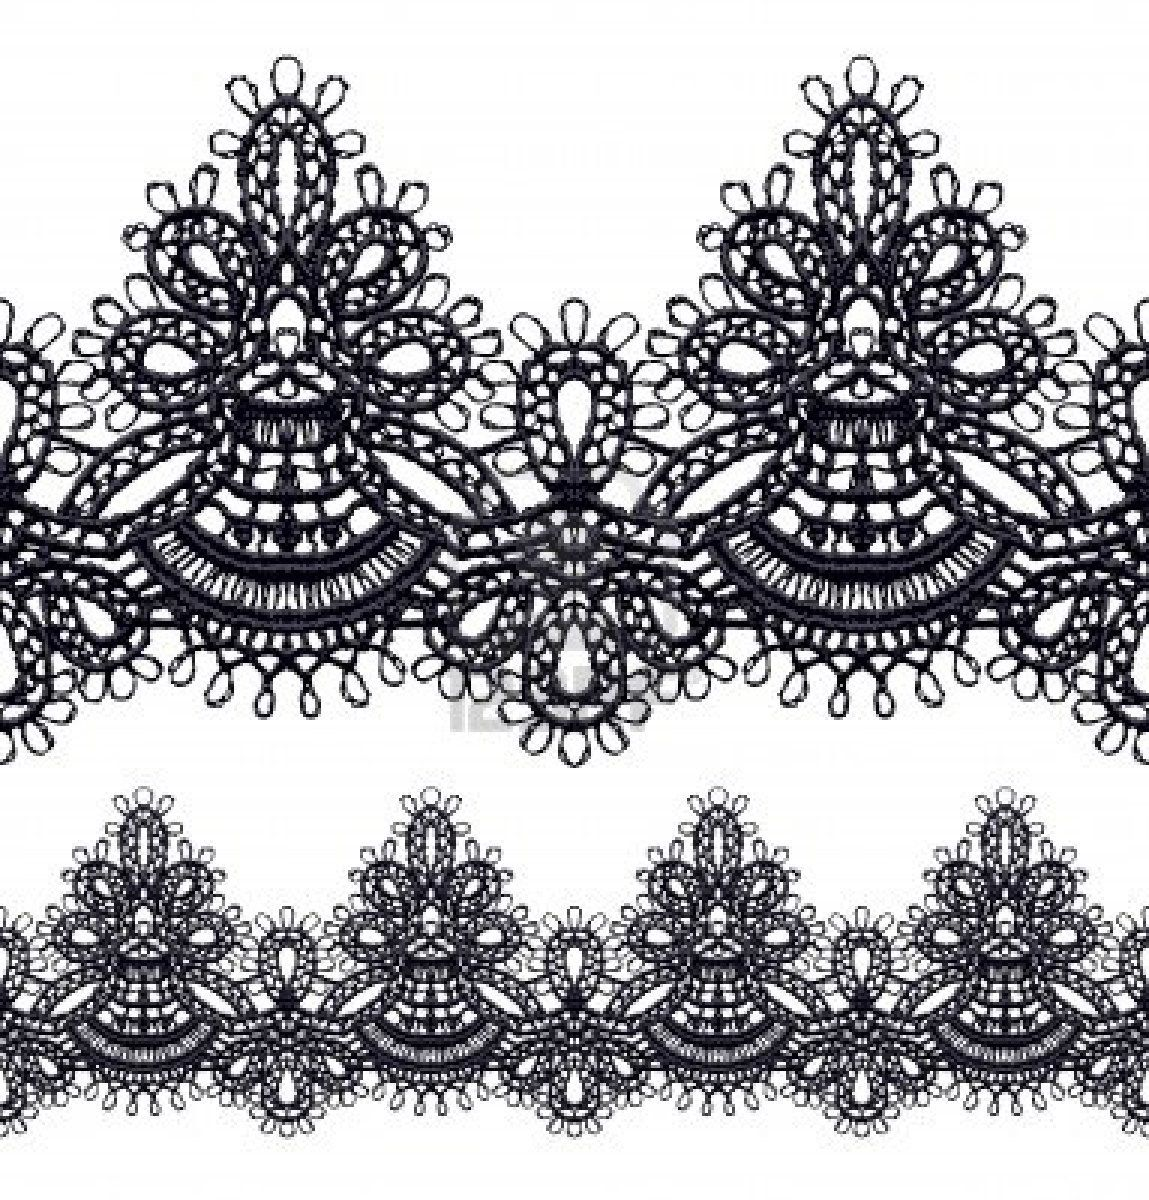 lace border drawing - photo #2